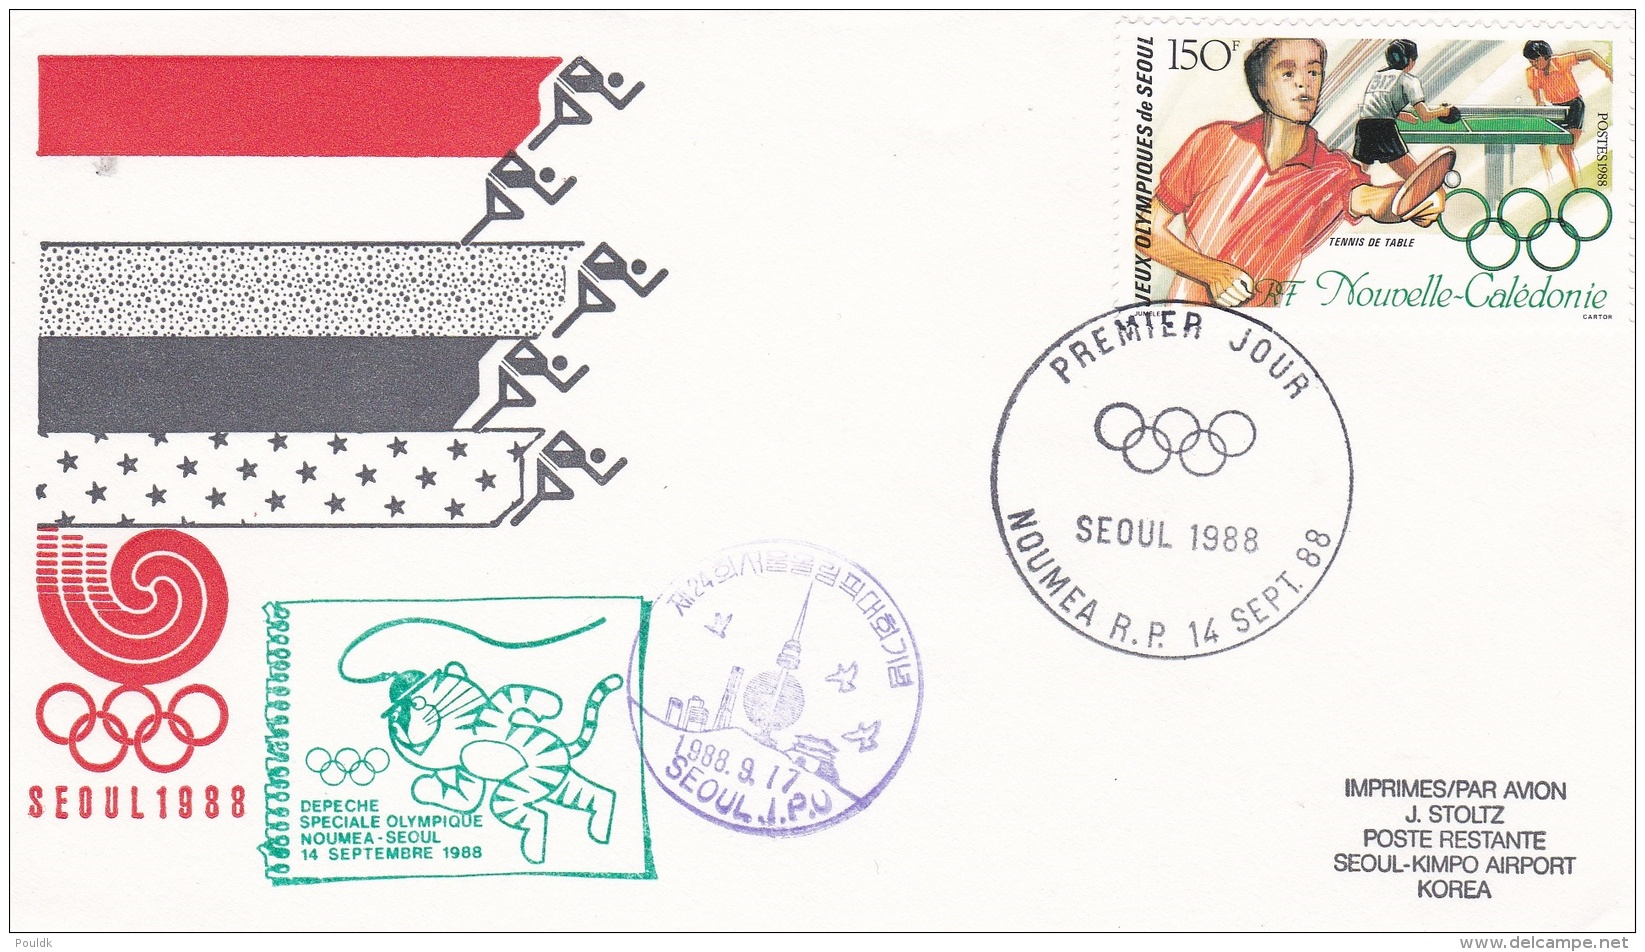 Nouvelle-Caledonie Flight Cover/FDC 1988 Seoul Depeche Speciale Olympique  (DD7-5) - Zomer 1988: Seoel